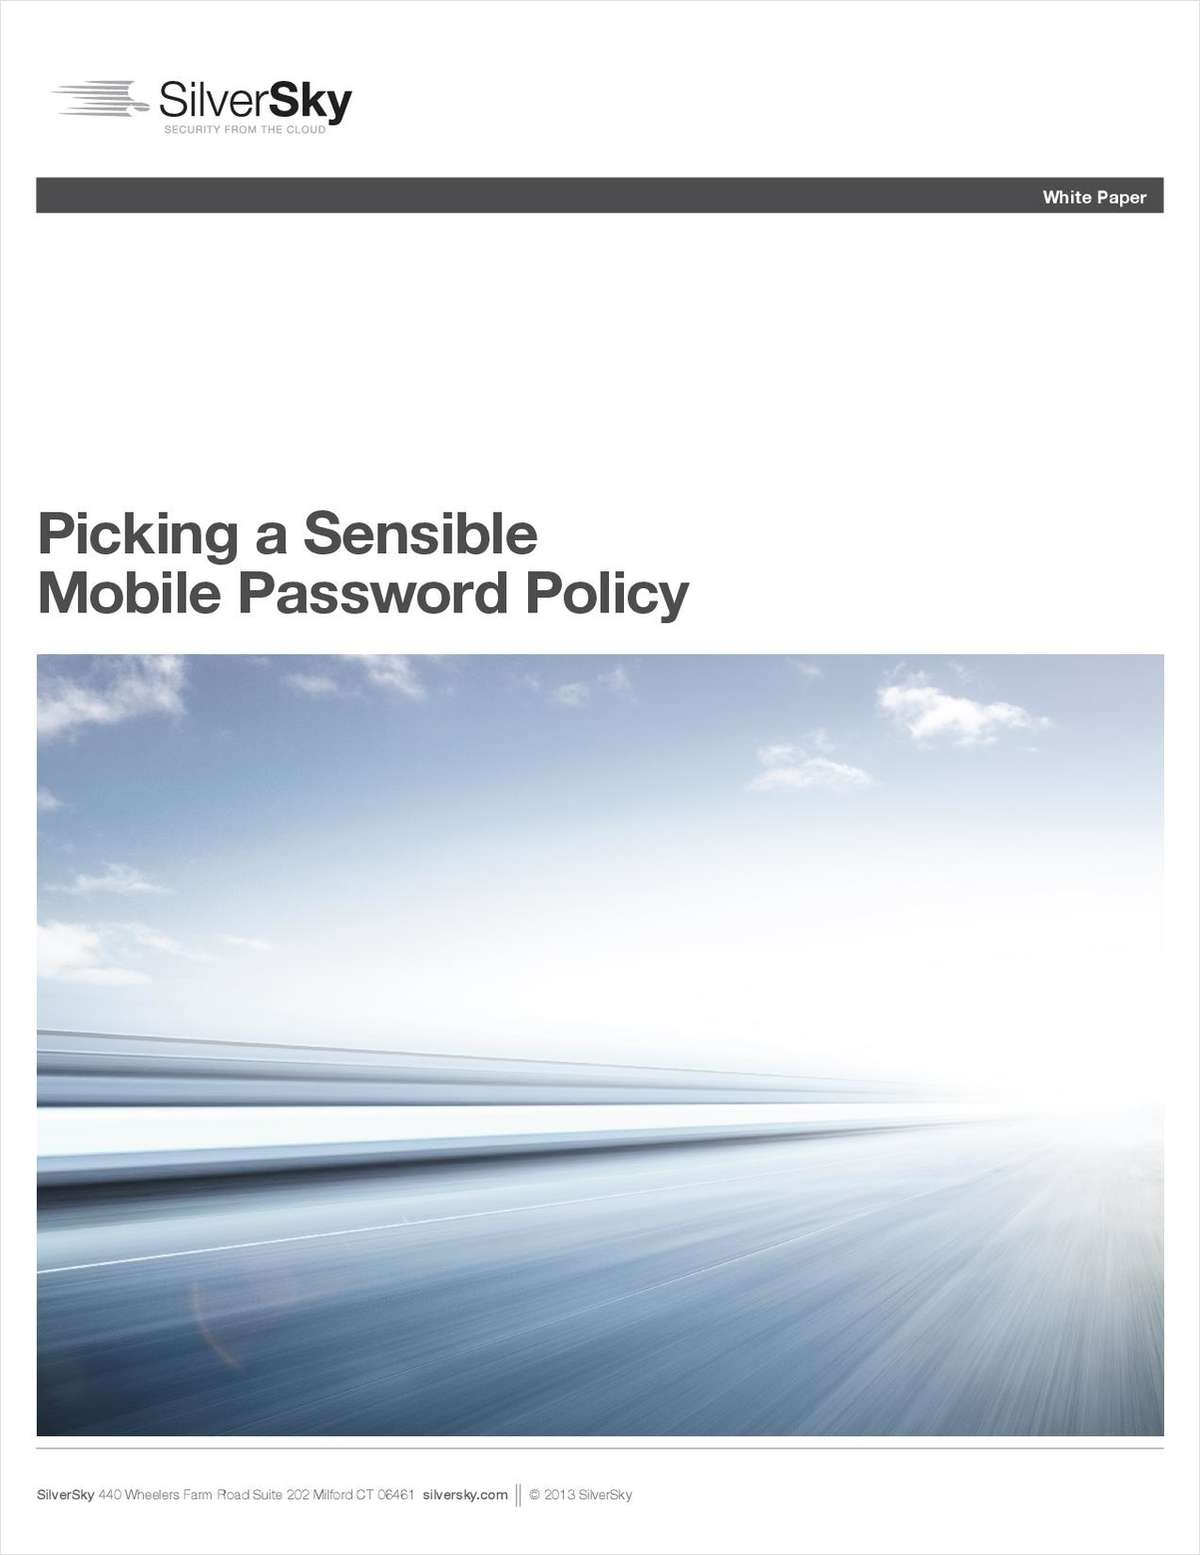 Picking a Sensible Mobile Password Policy for Your Employees